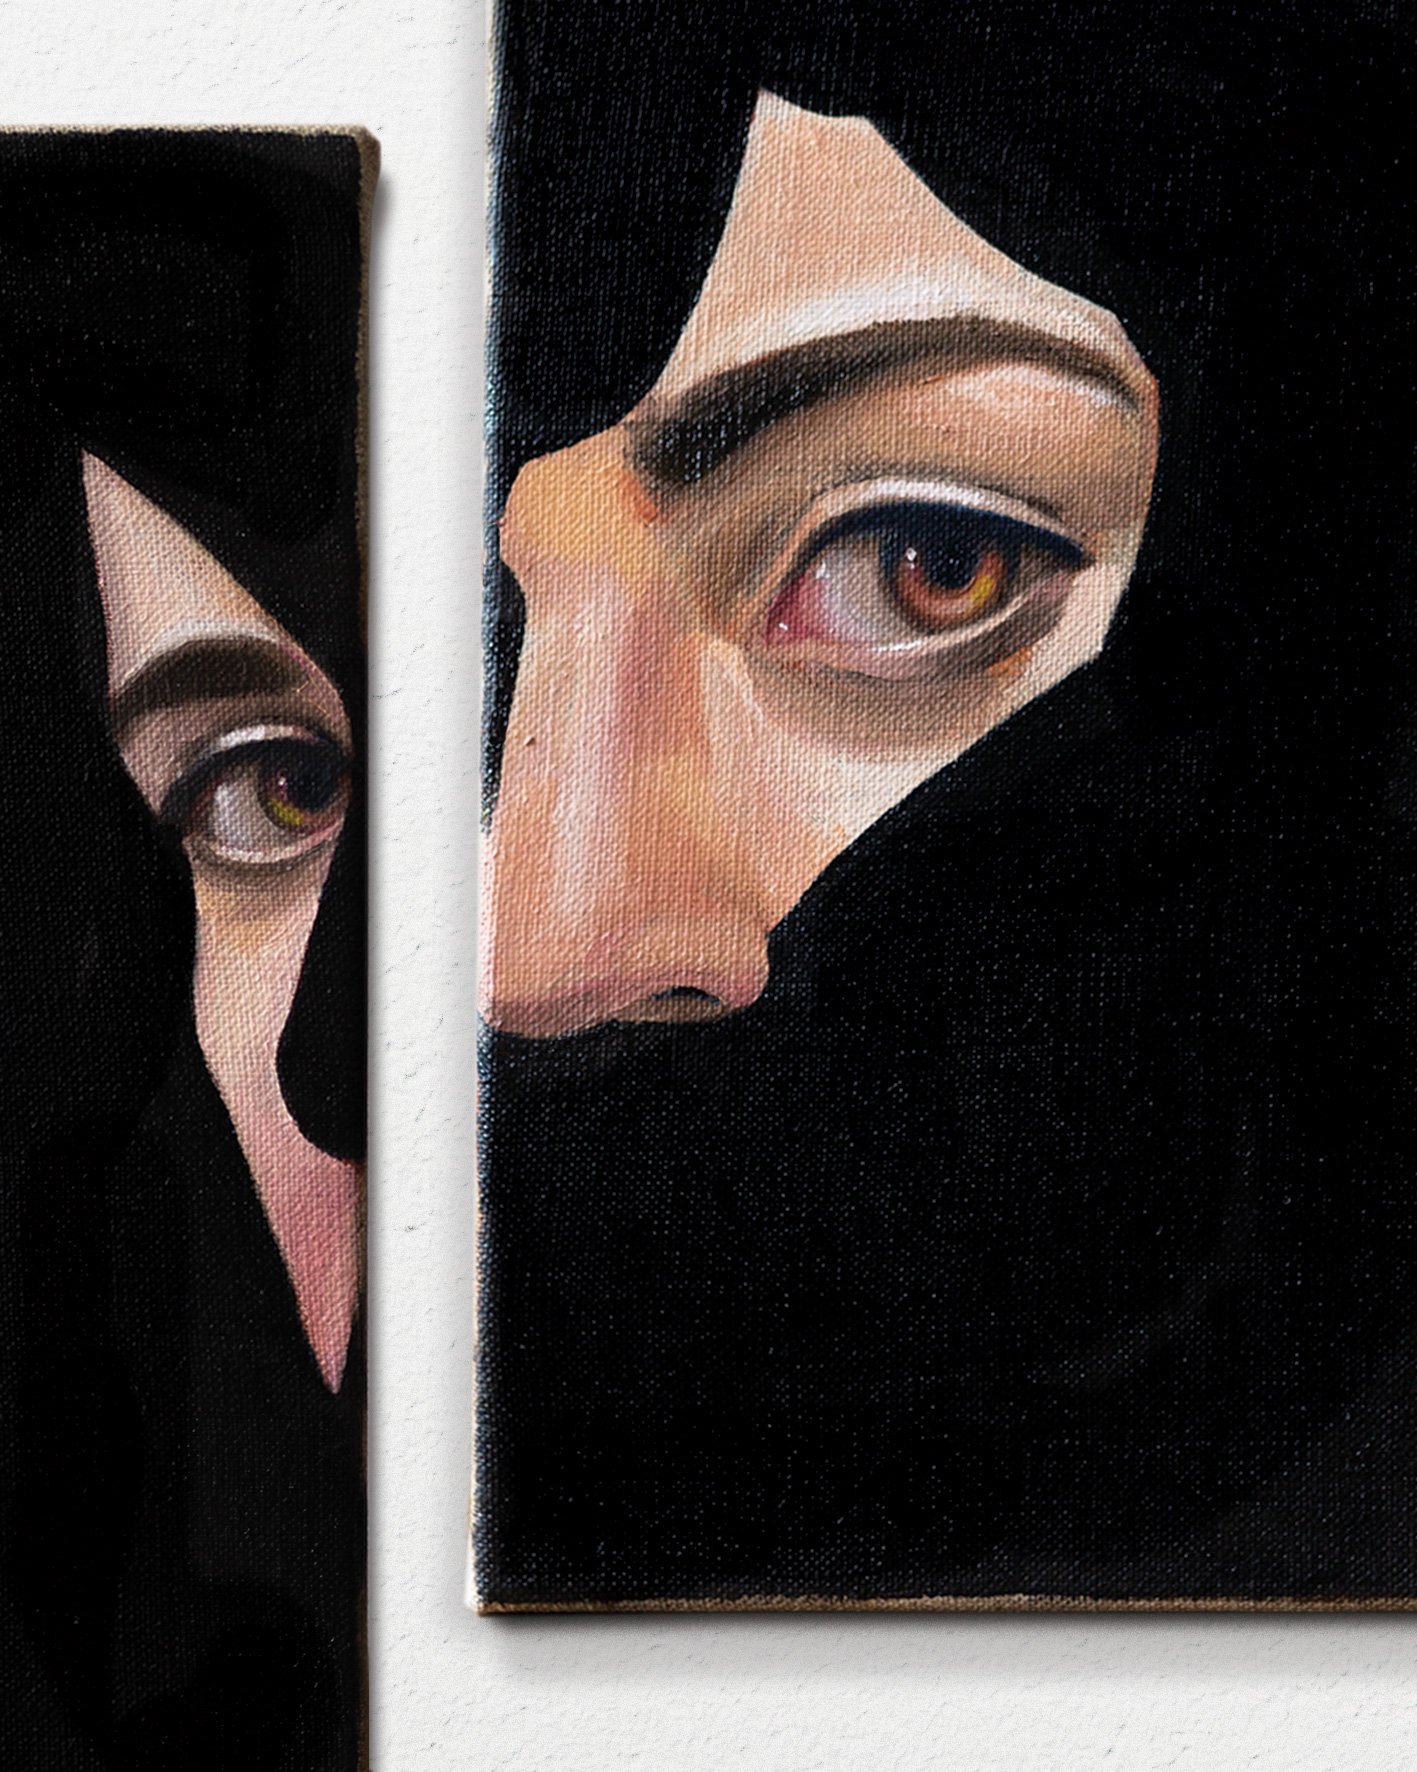 Black diptych detail, oil on linen